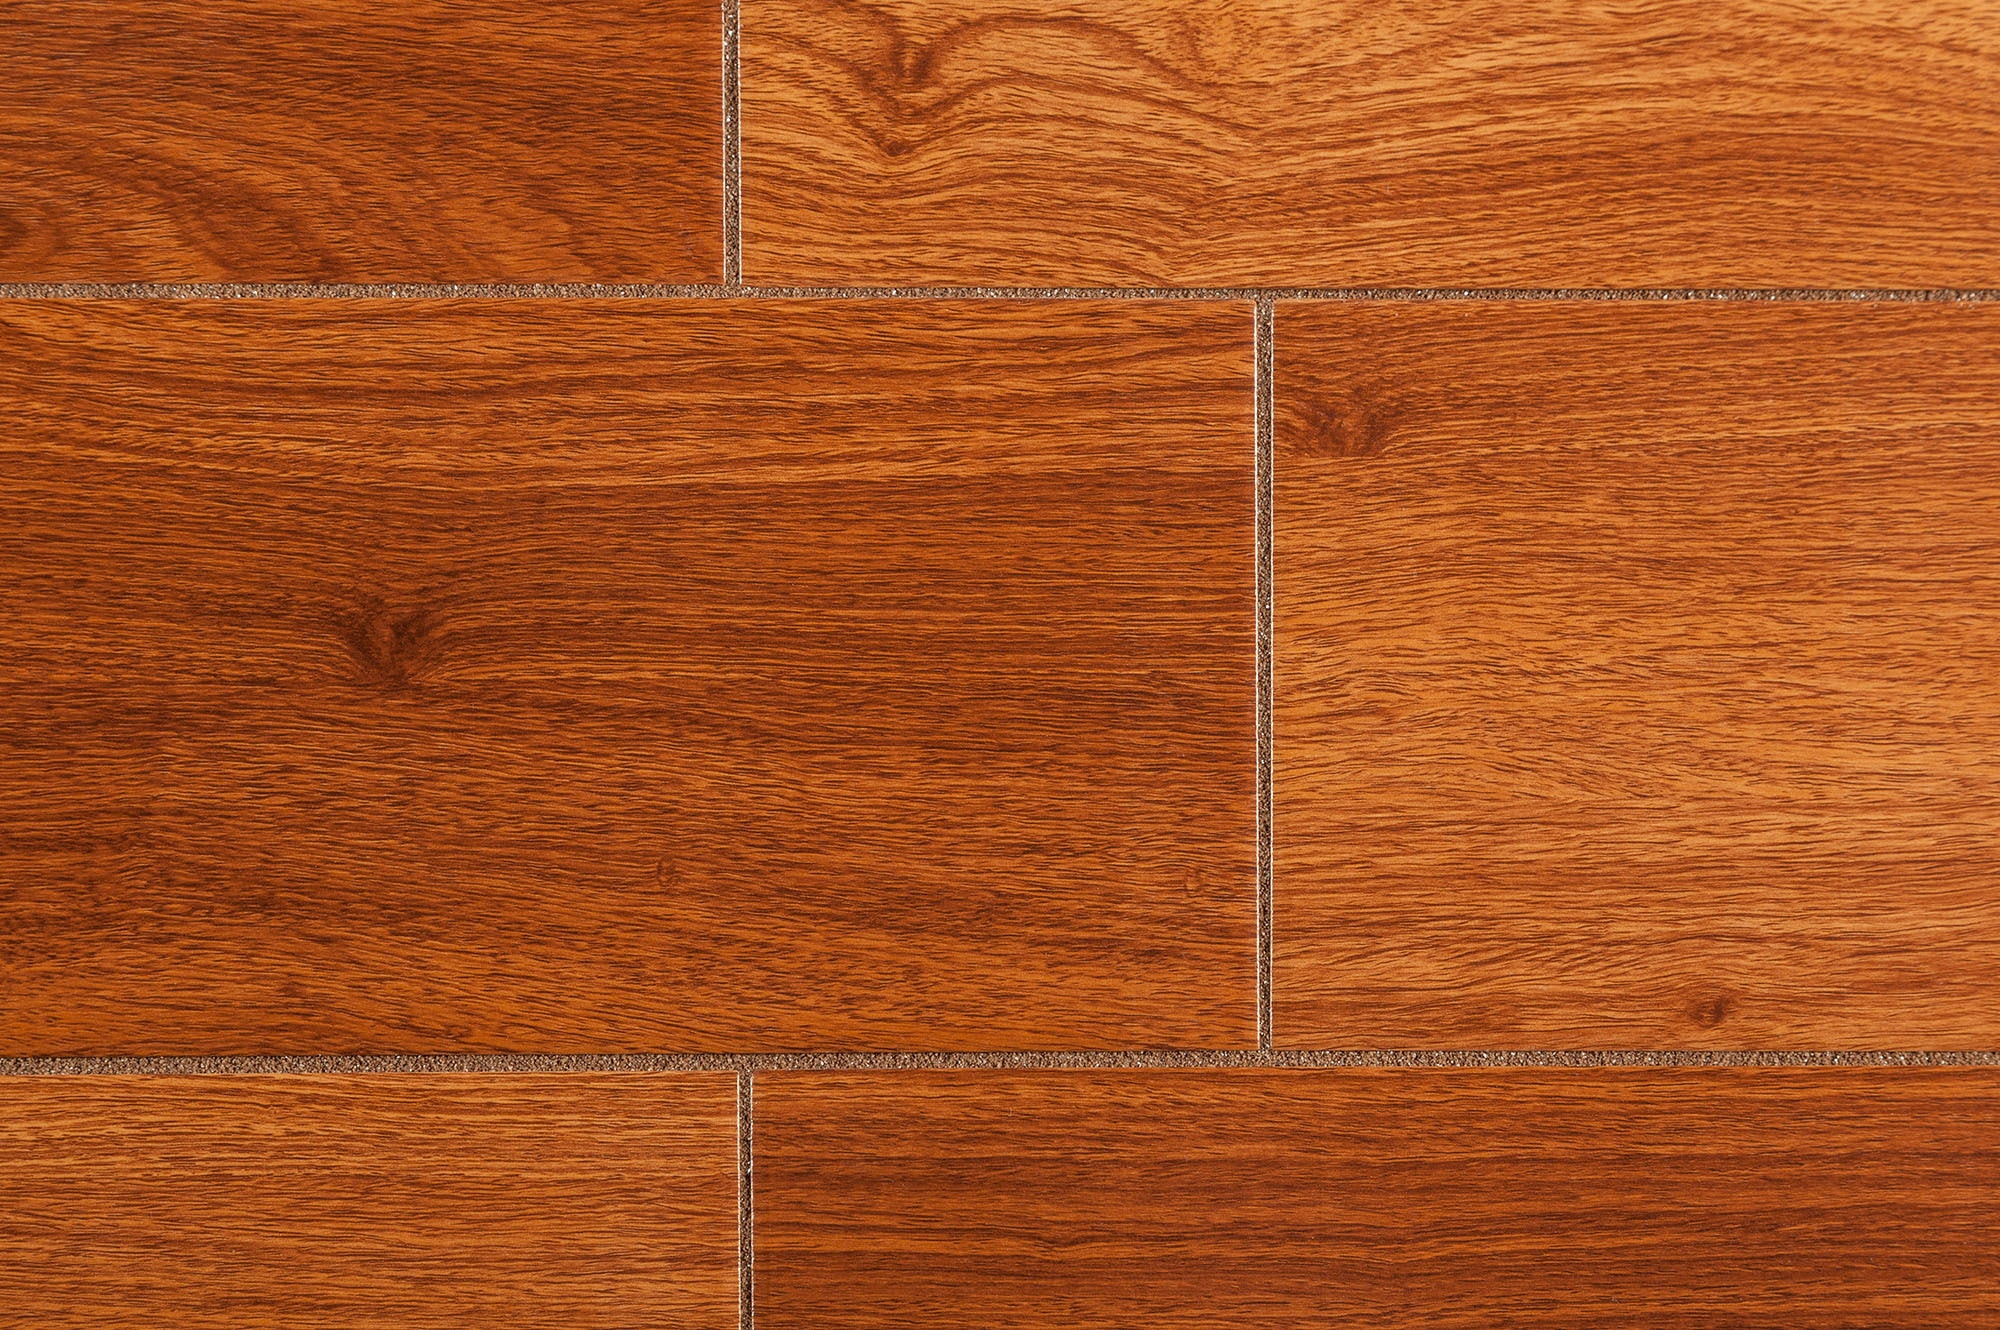 Salerno ceramic tile american wood series red oak 6x24 dailygadgetfo Choice Image